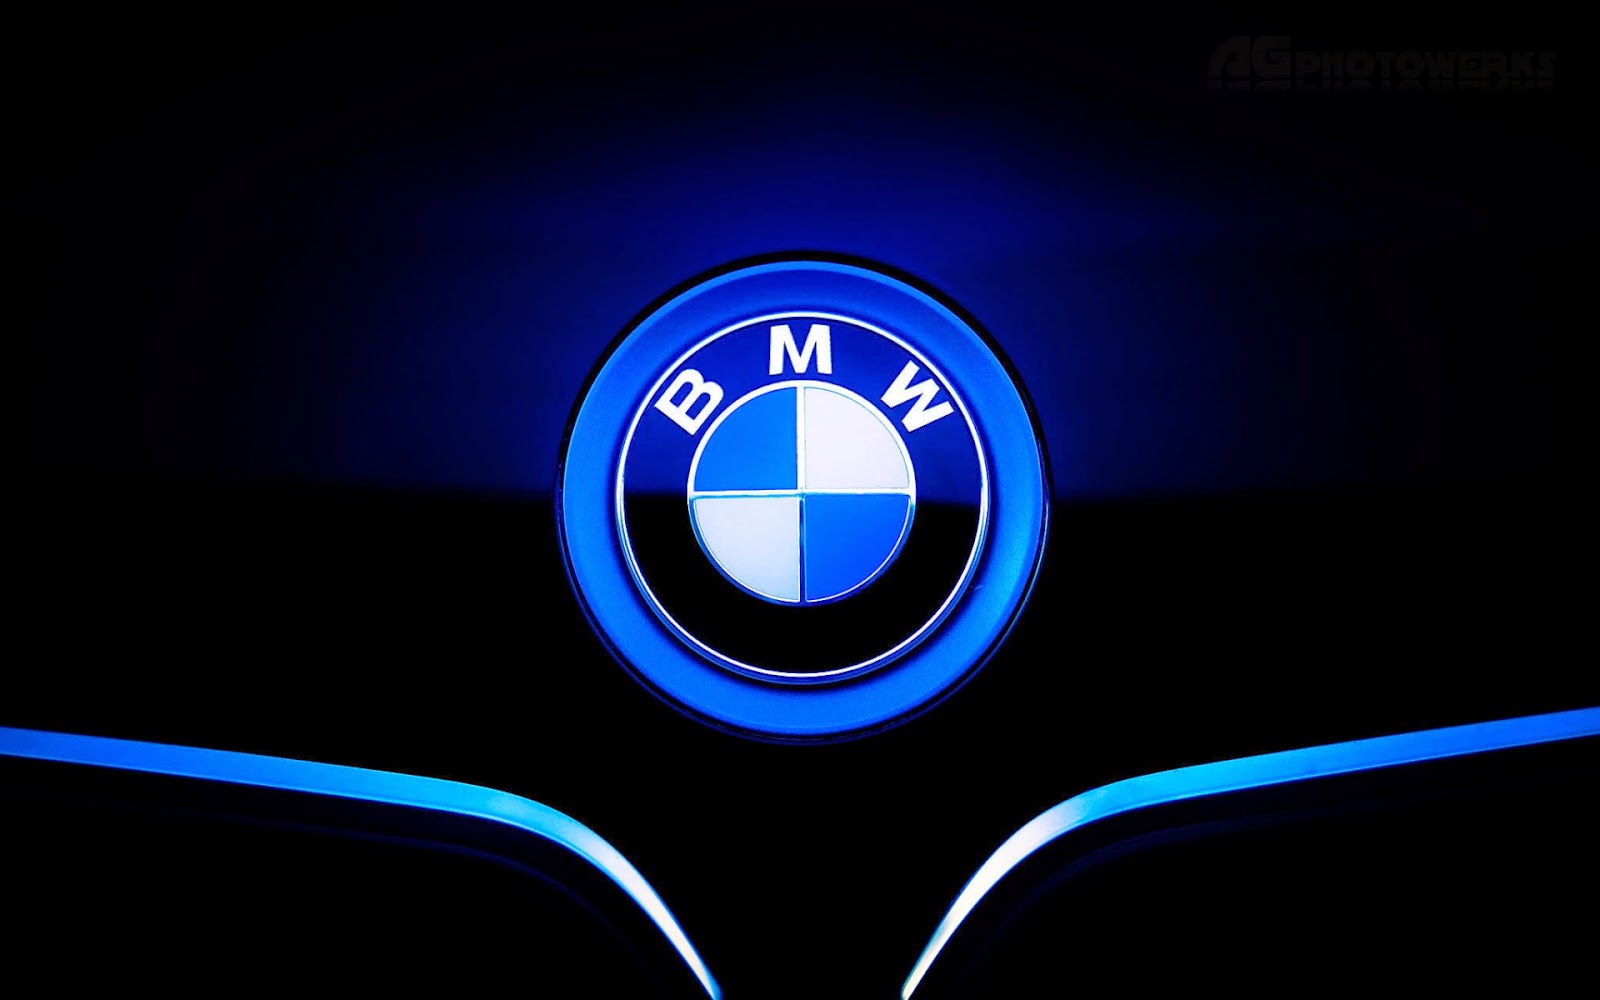 BMW masina inteligenta